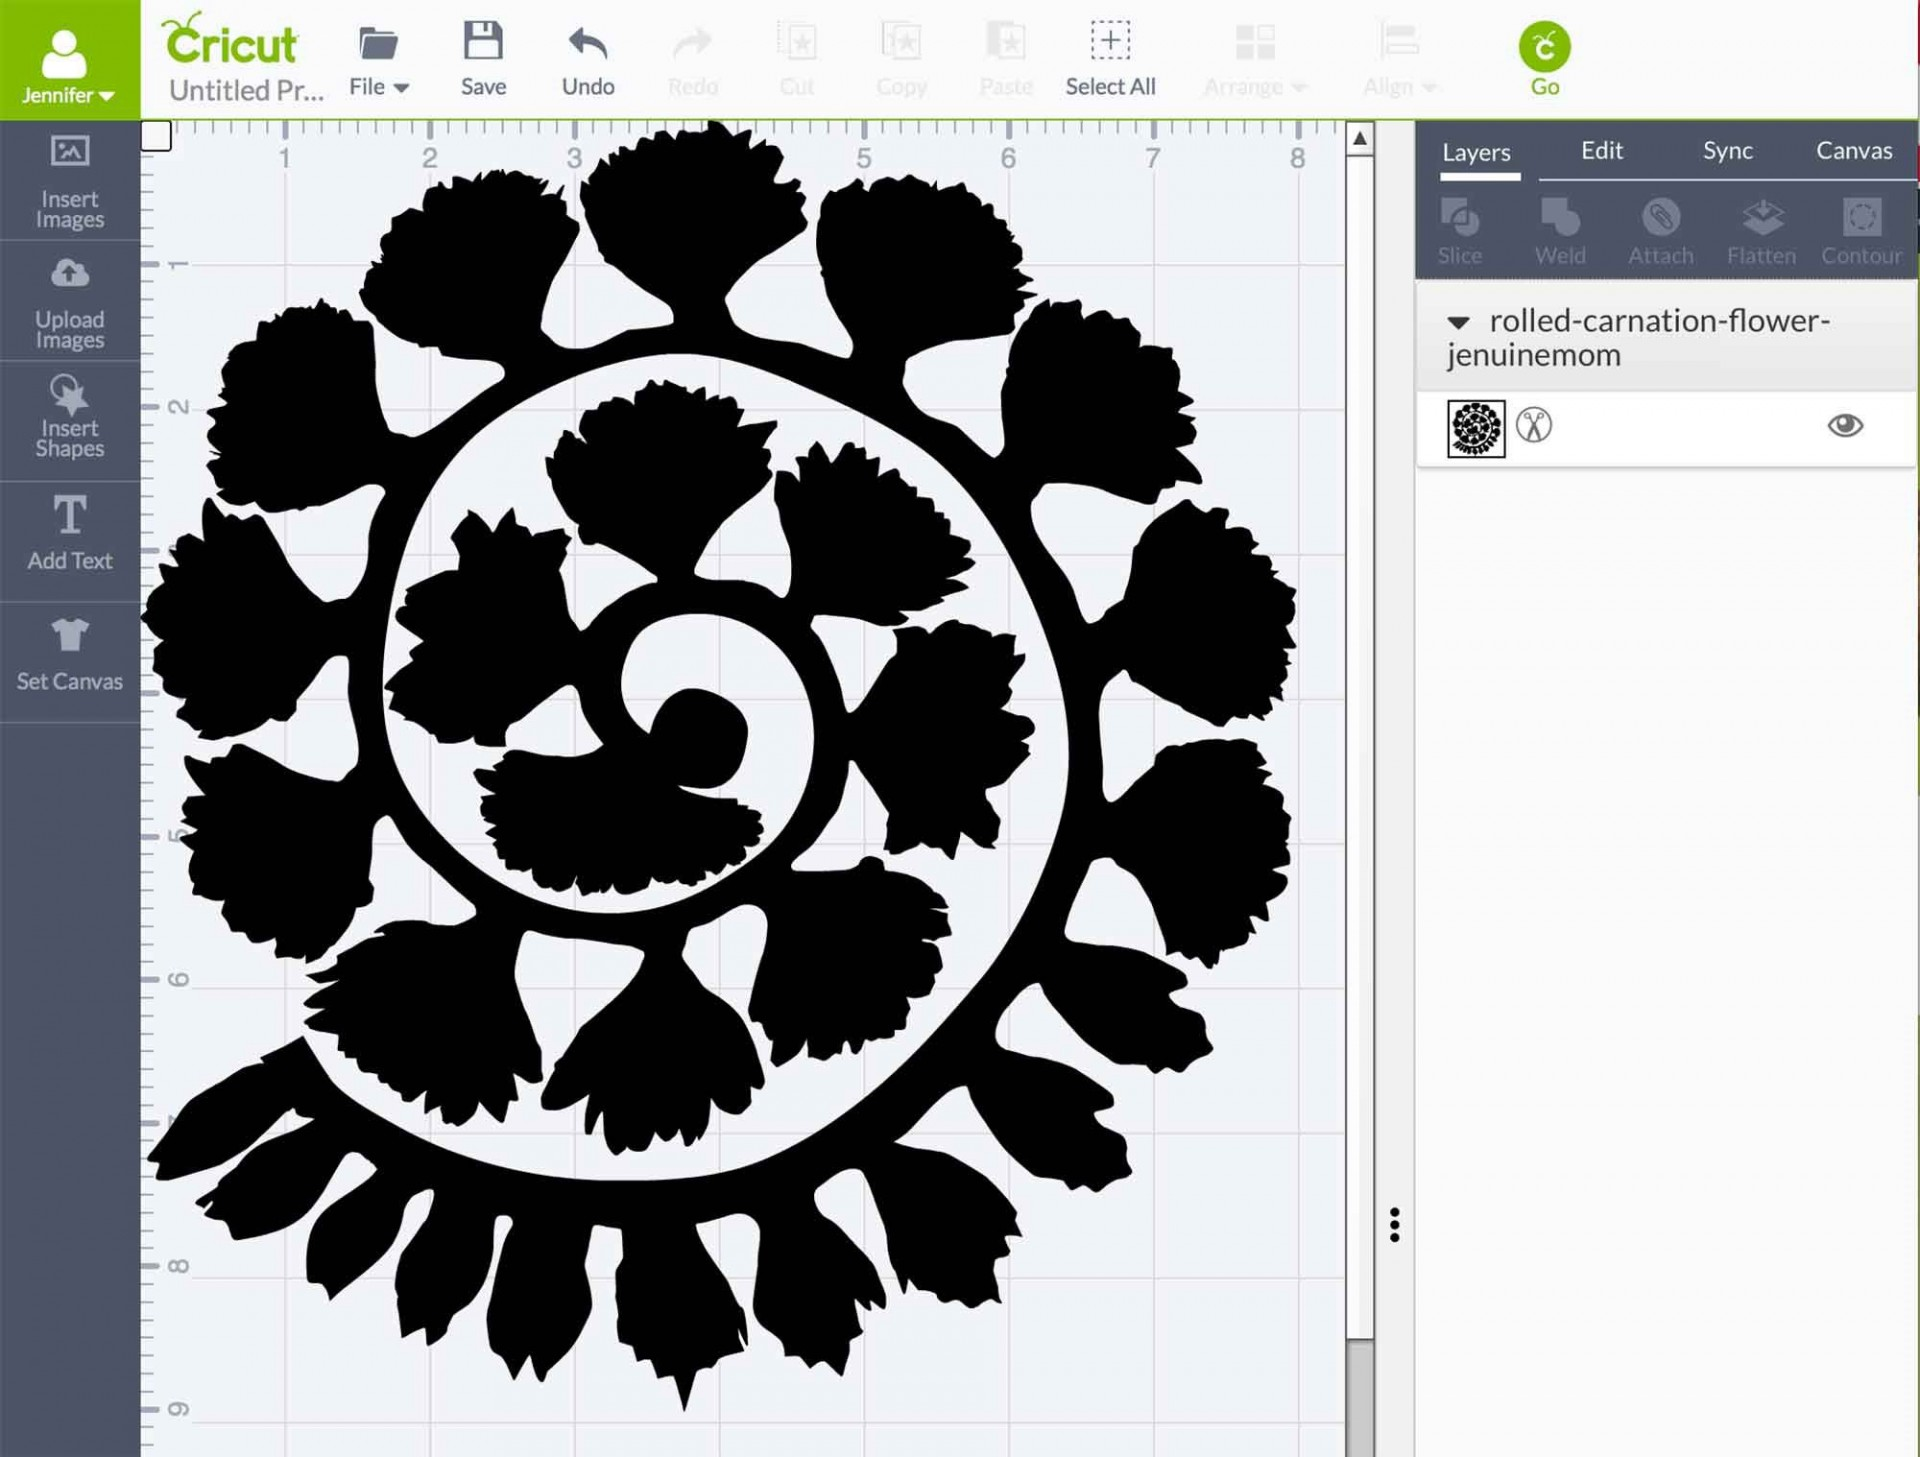 009 Awesome Free Rolled Paper Flower Template For Cricut Inspiration 1920